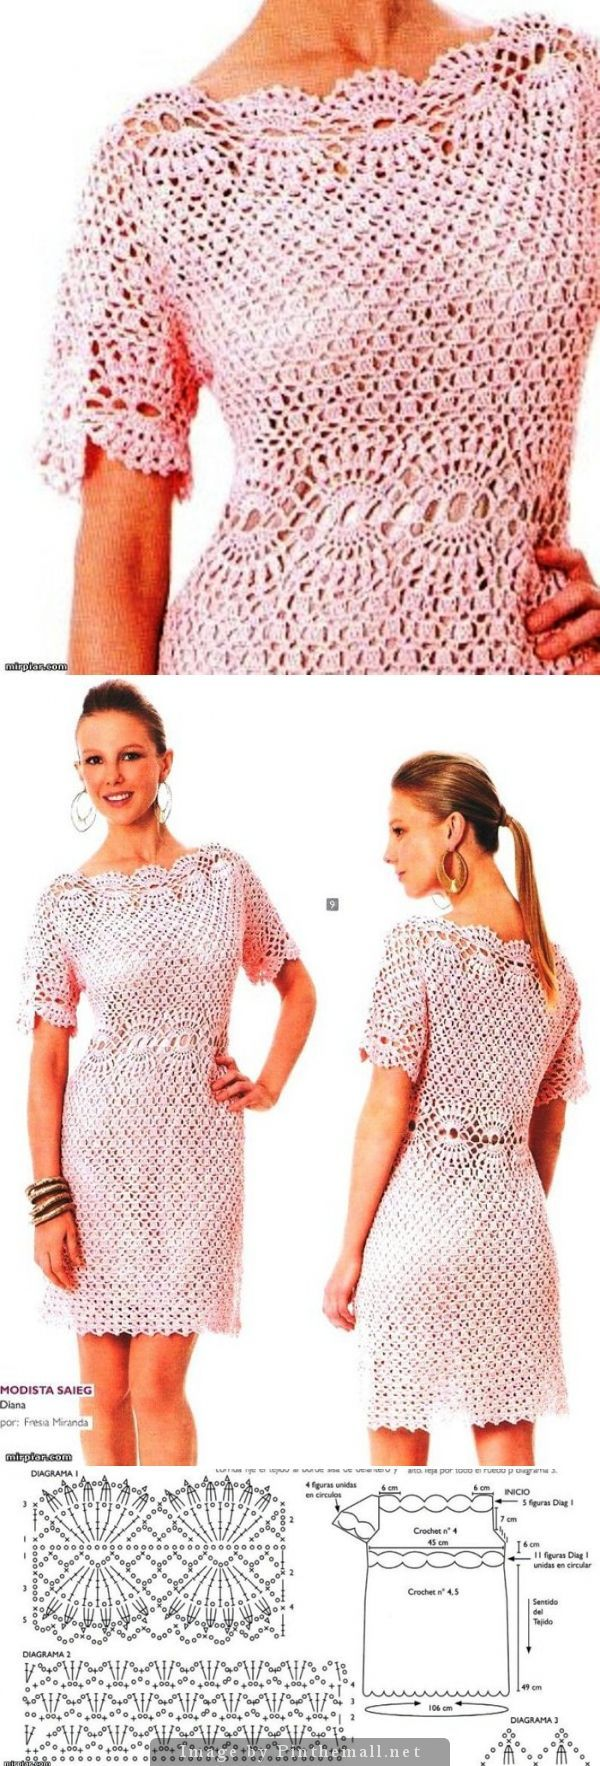 Crochet top/dress.   http://www.liveinternet.ru/users/frosinda/post150119004/ - created via http://pinthemall.net